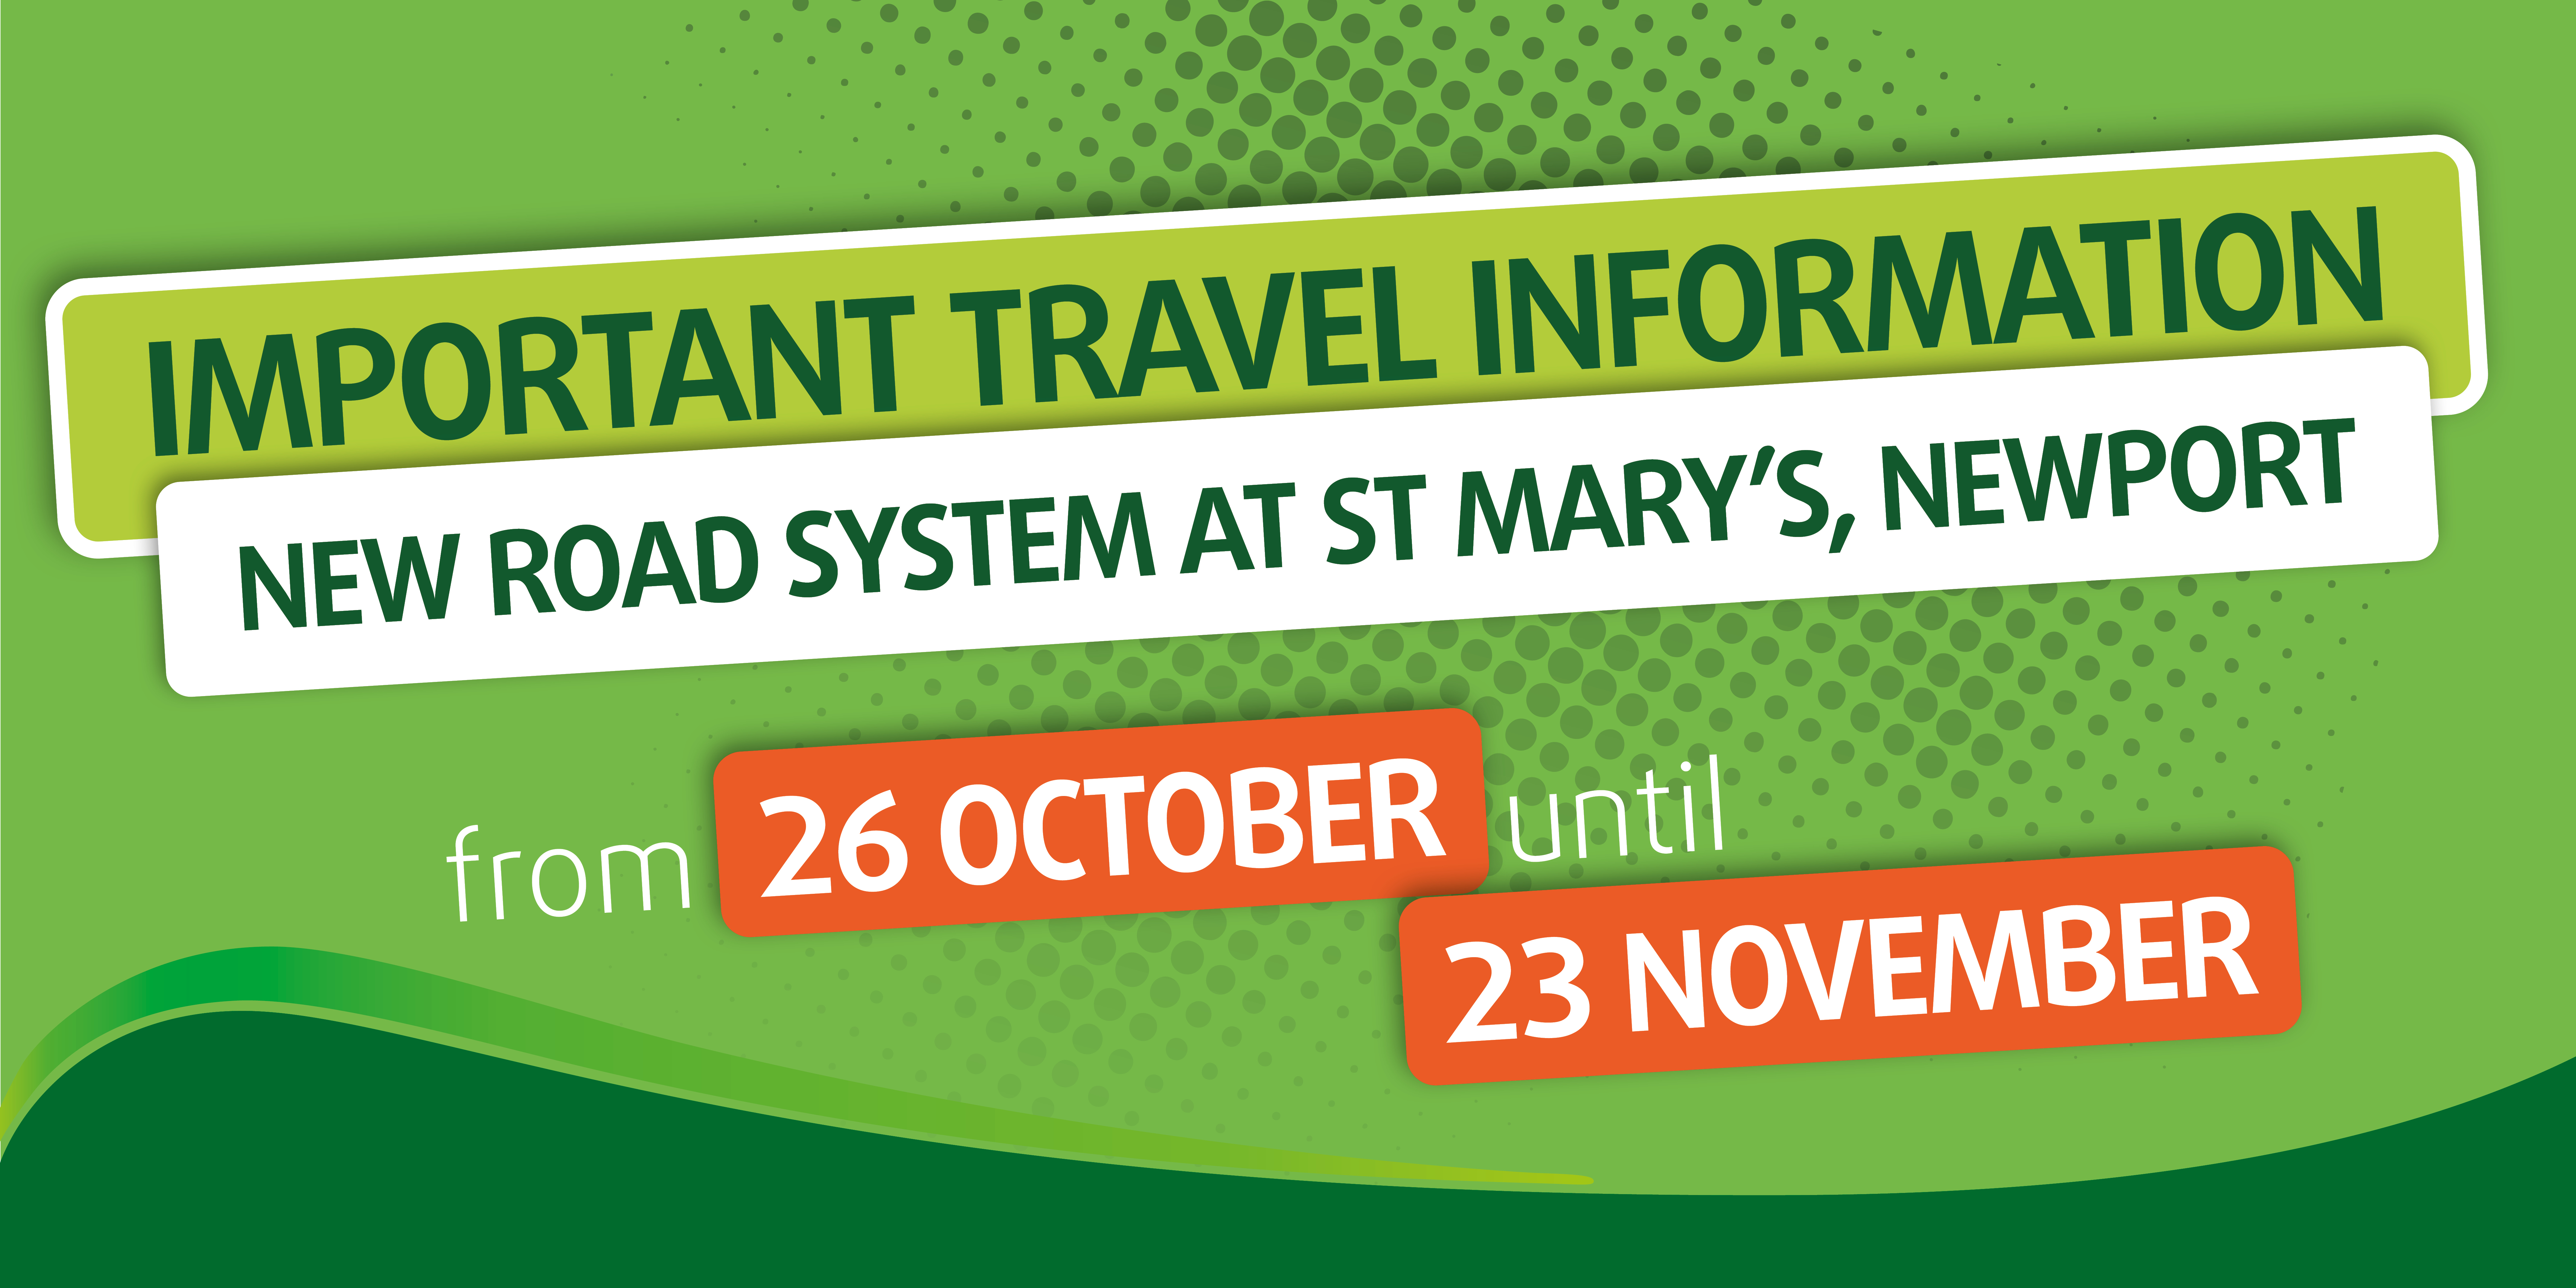 illustration with text Important Travel Information new road system at st mary's Newport from 26 october until 23 november